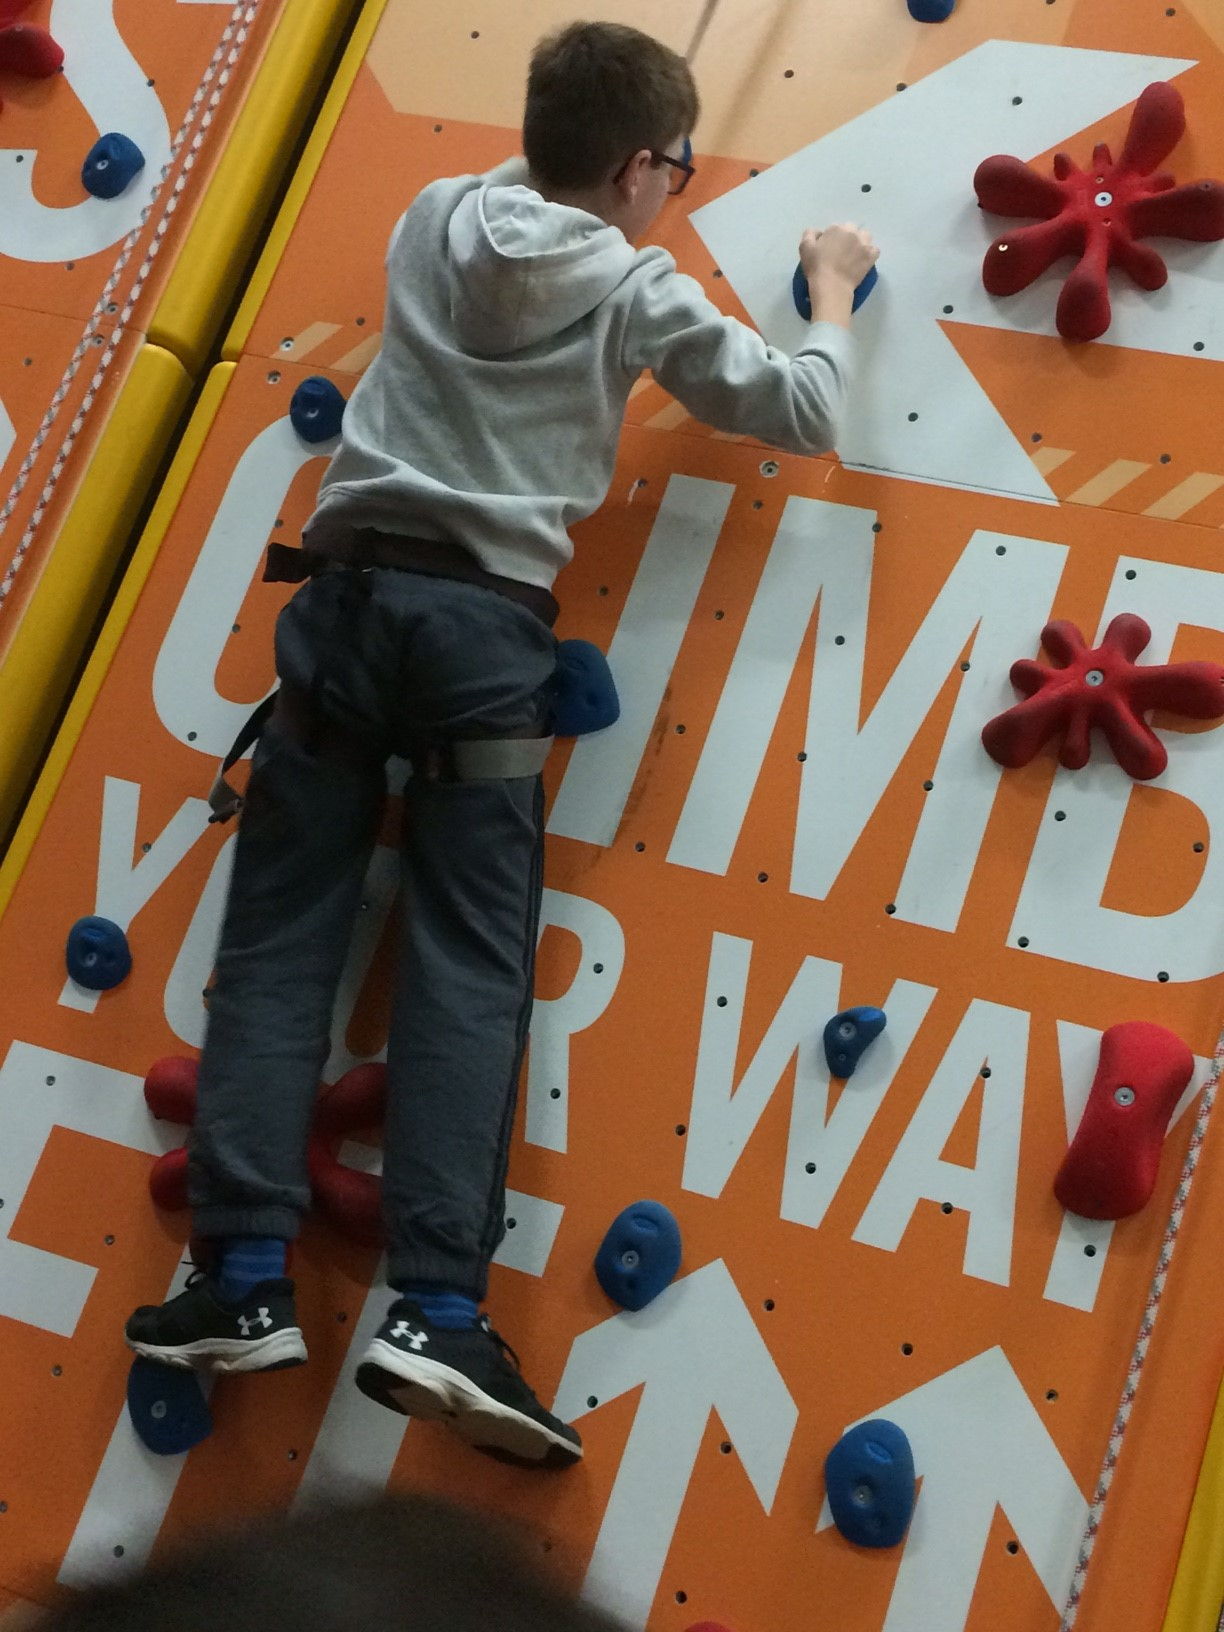 Image showing young boy rock climbing